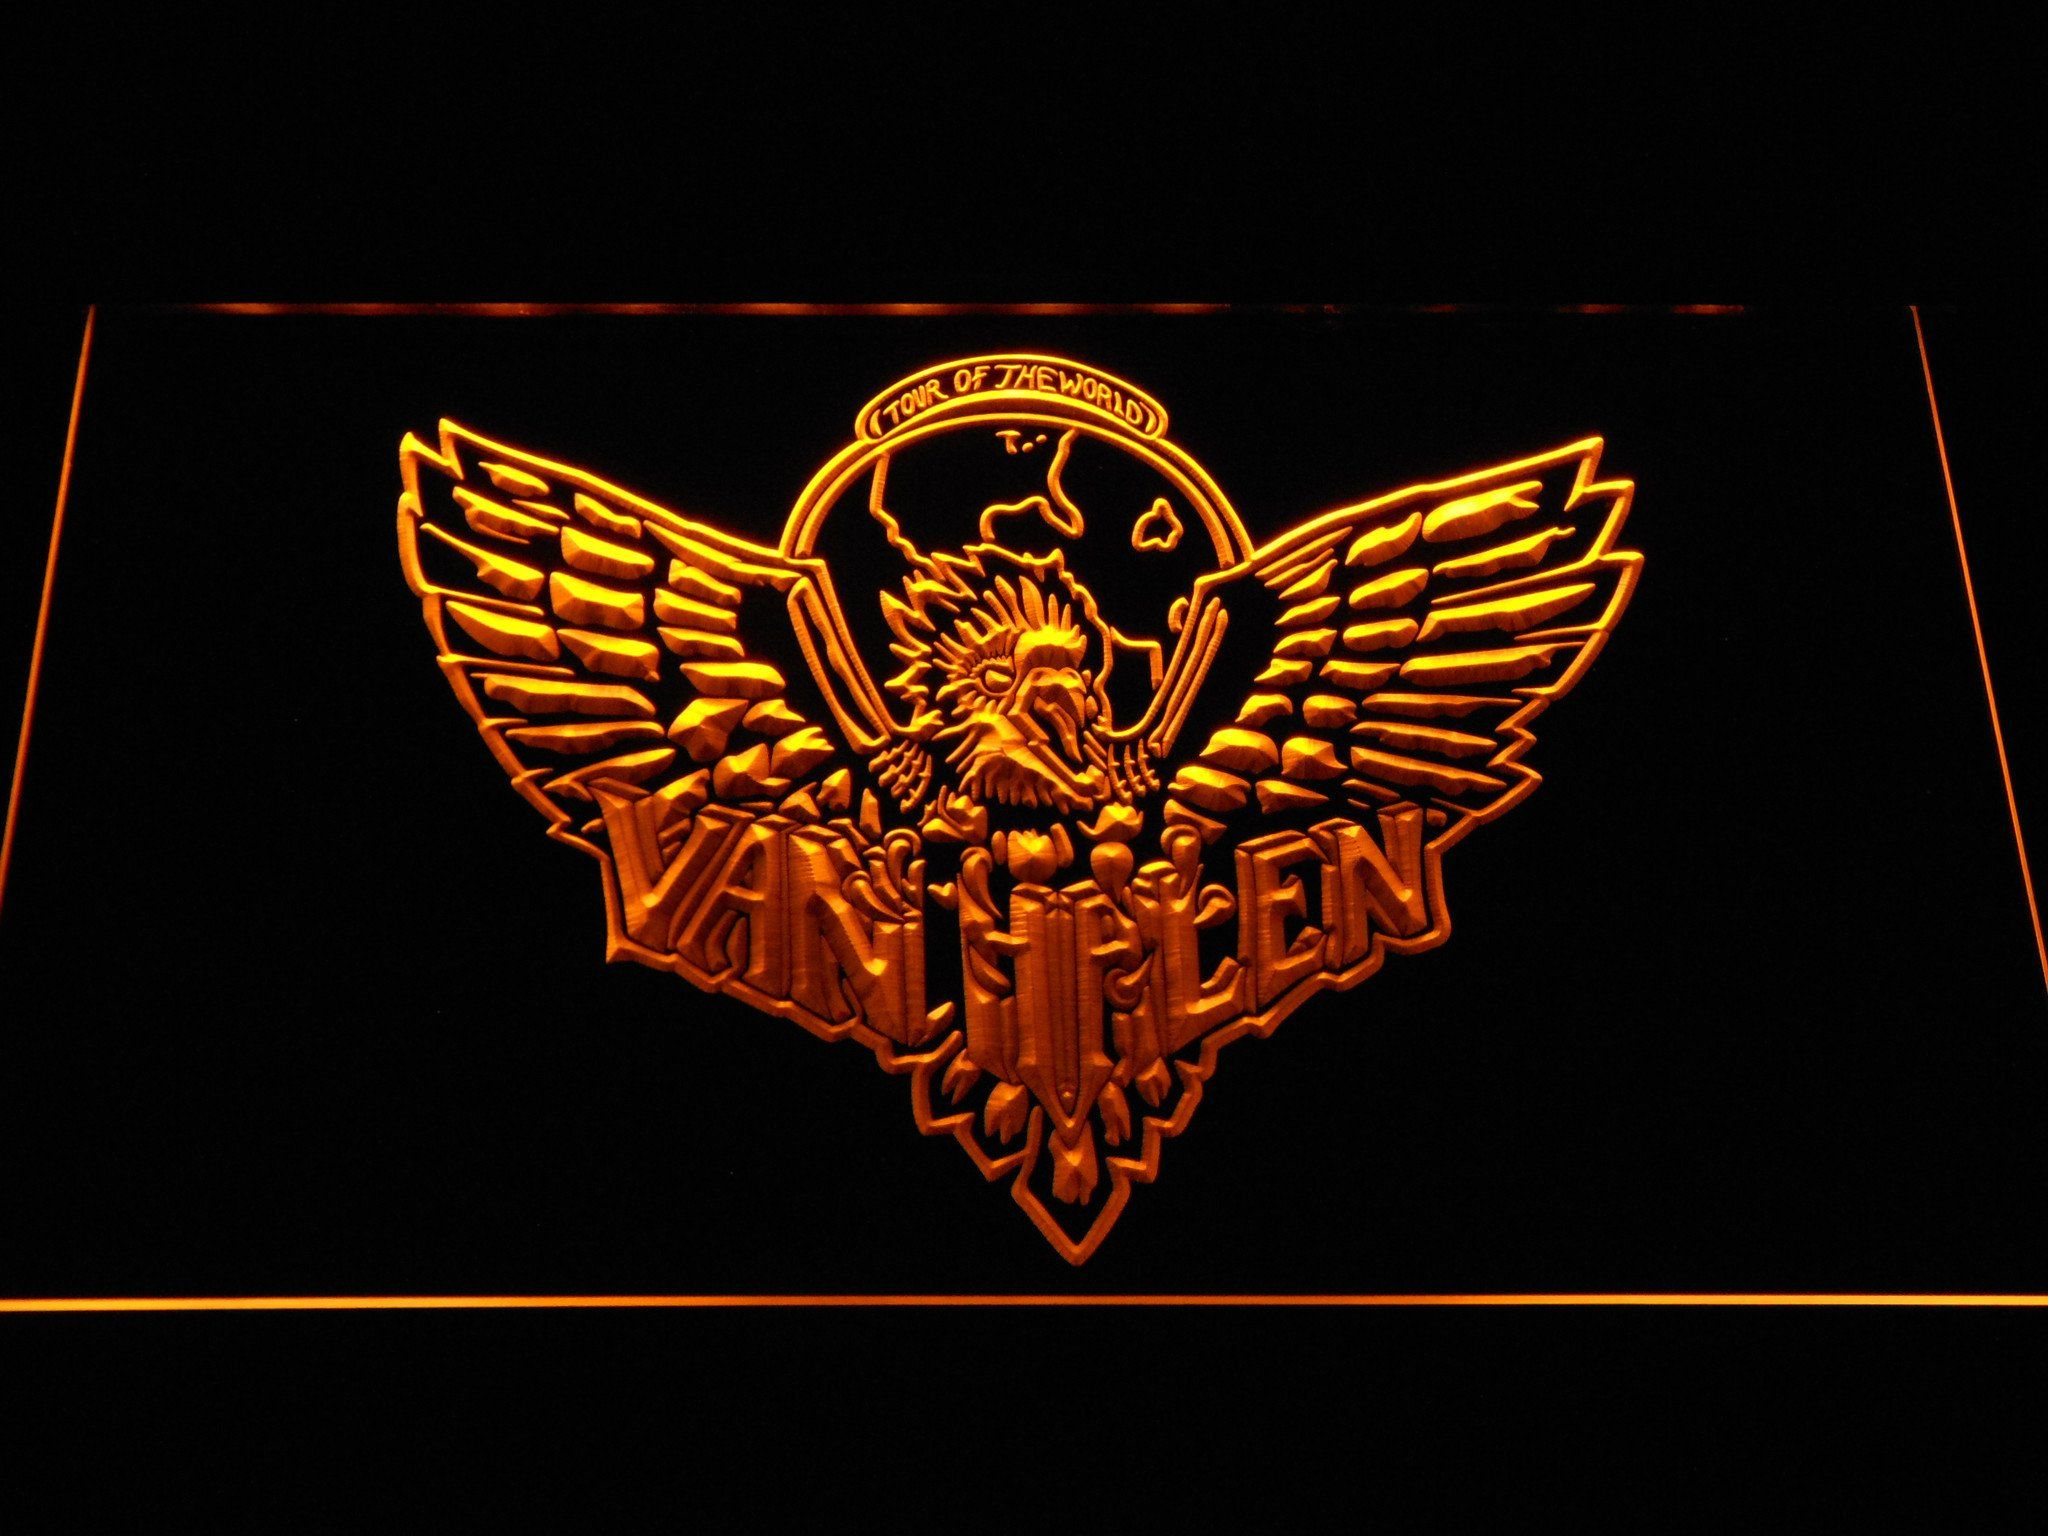 Van Halen Eagle Led Neon Sign Led Neon Signs Neon Signs Cool Bedroom Accessories